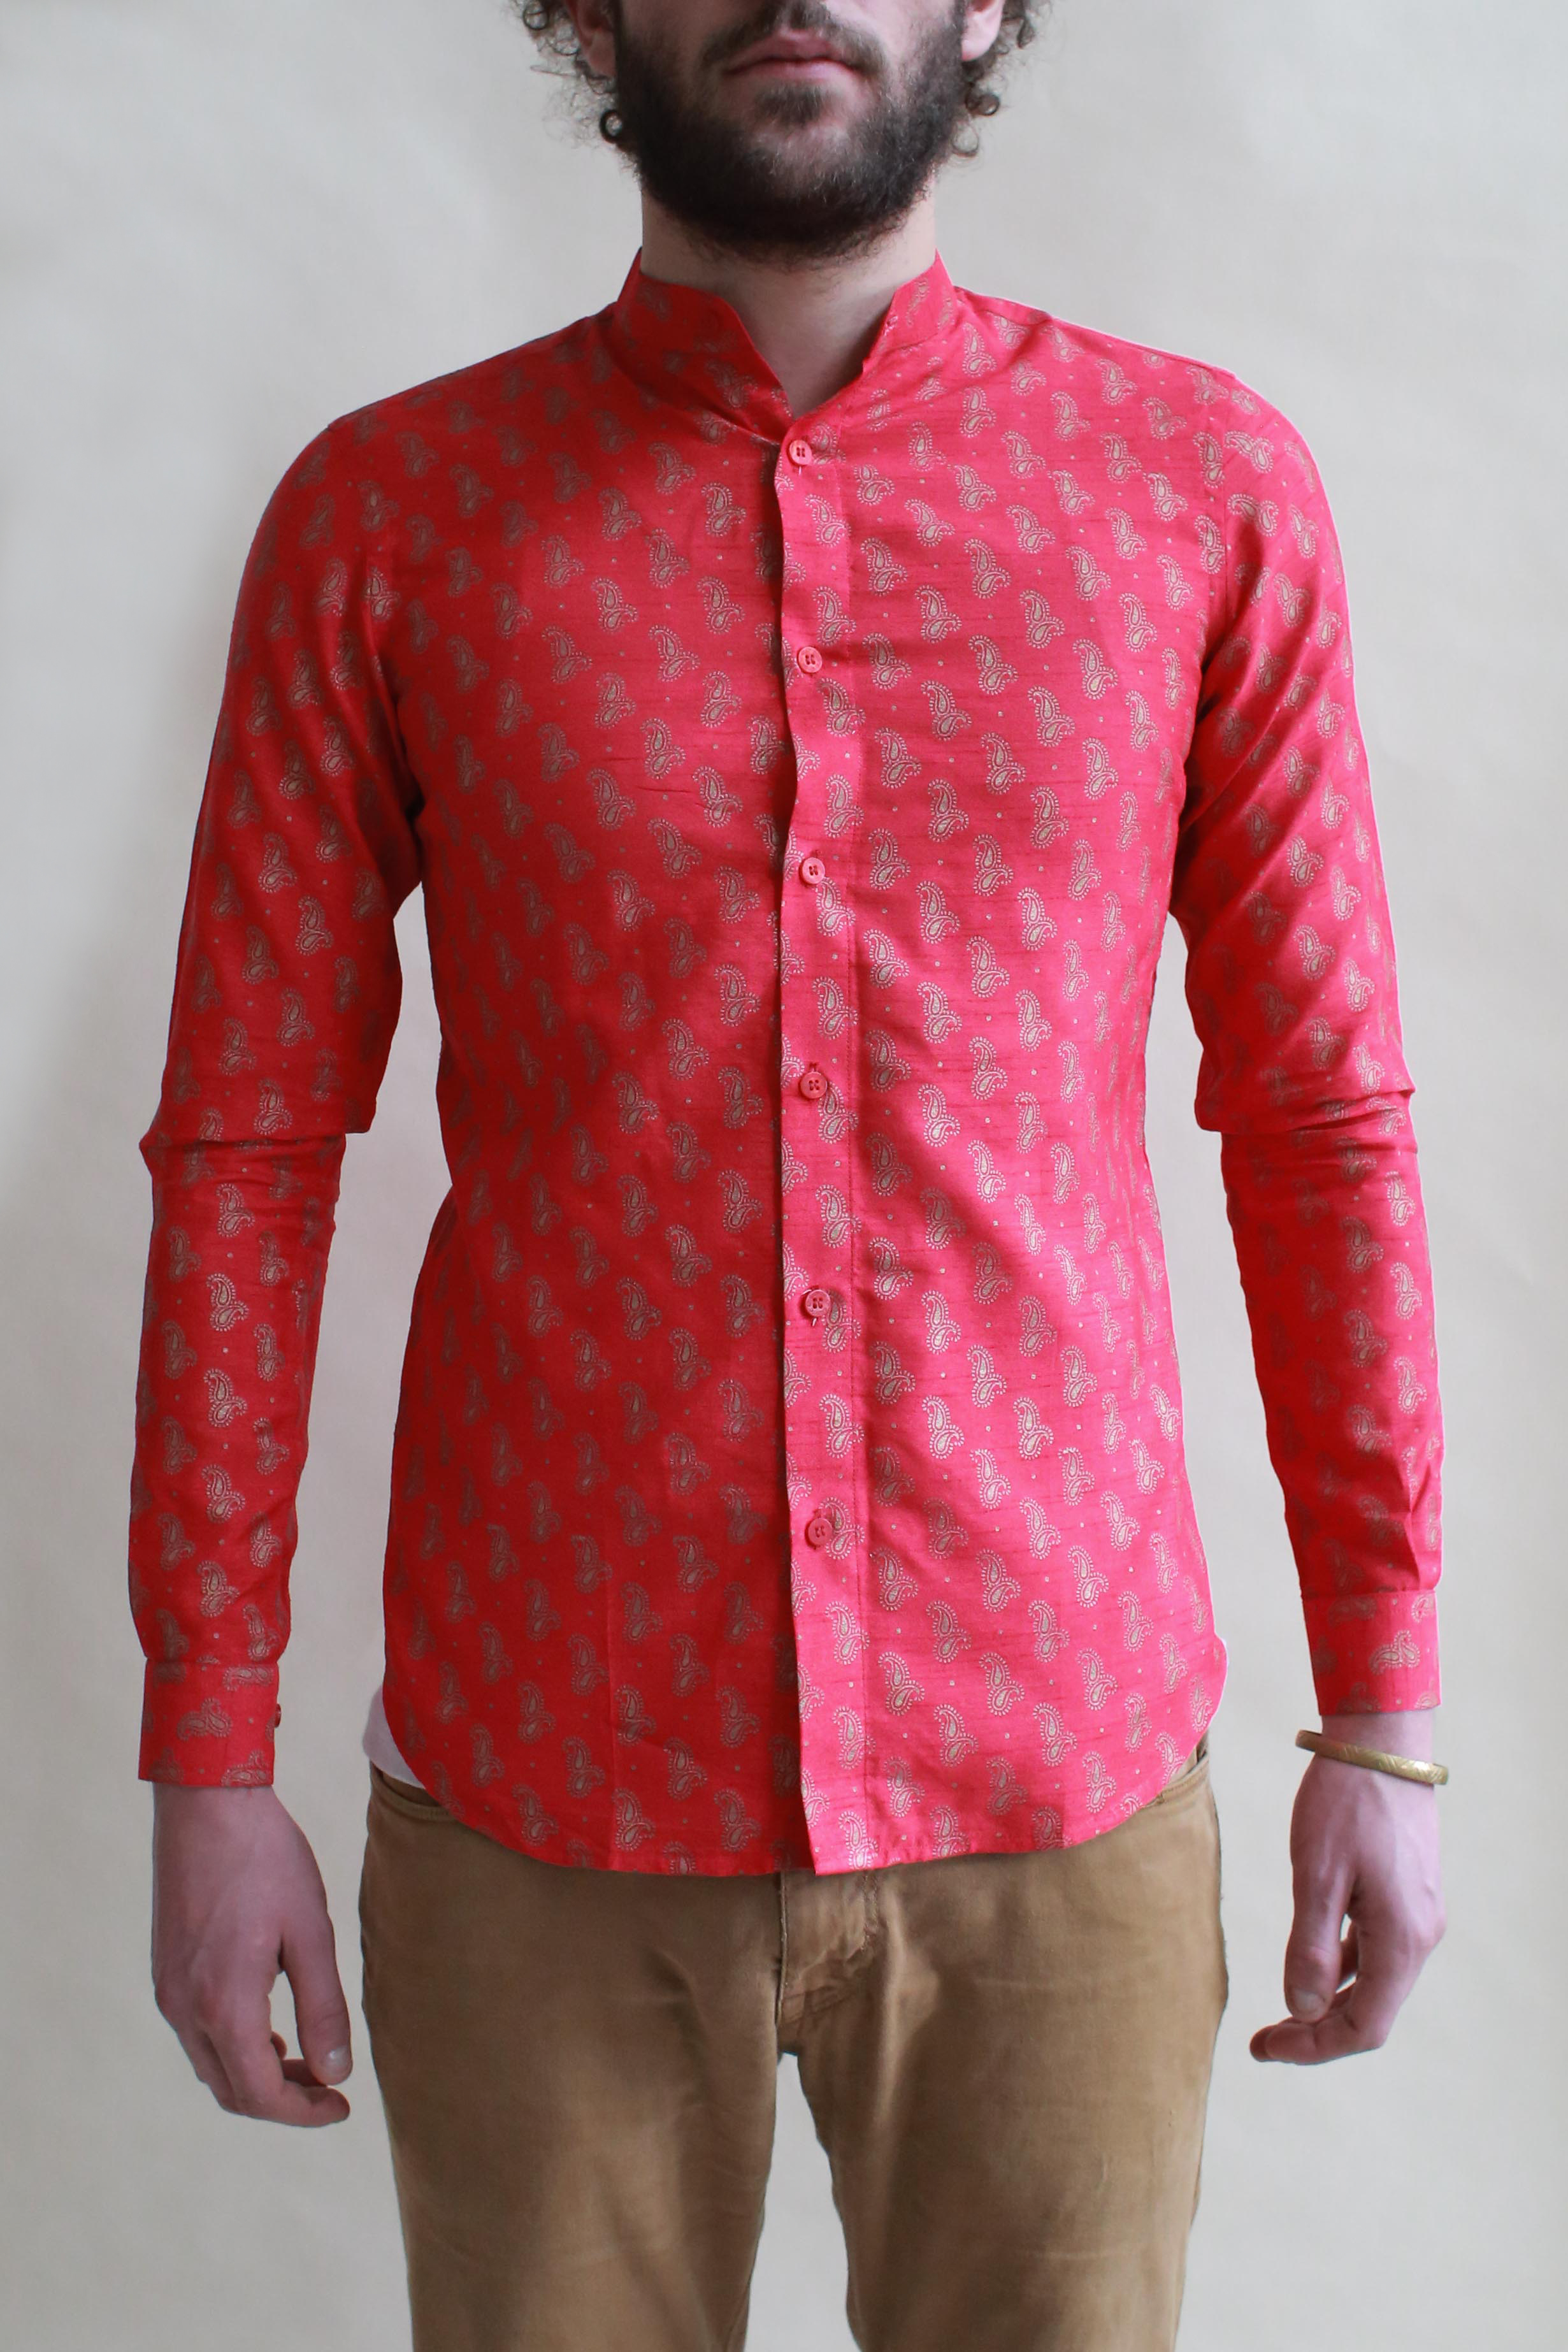 ALSAR_RED_SHIRT_CHARZA